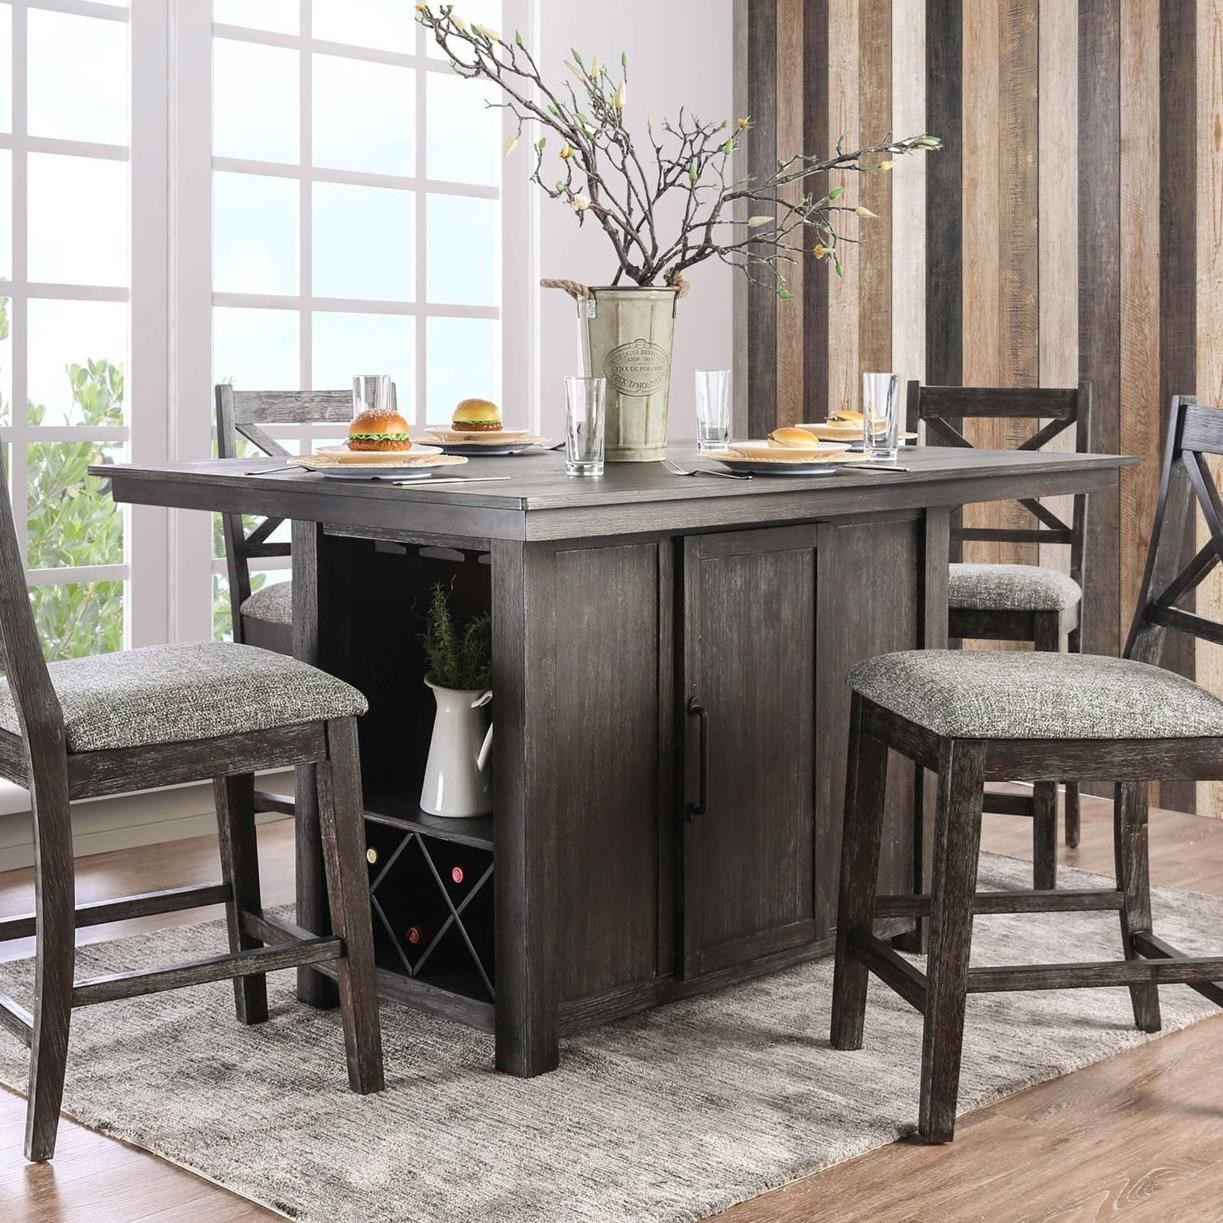 Faulkton Counter Height Table by Furniture of America at Nassau Furniture and Mattress